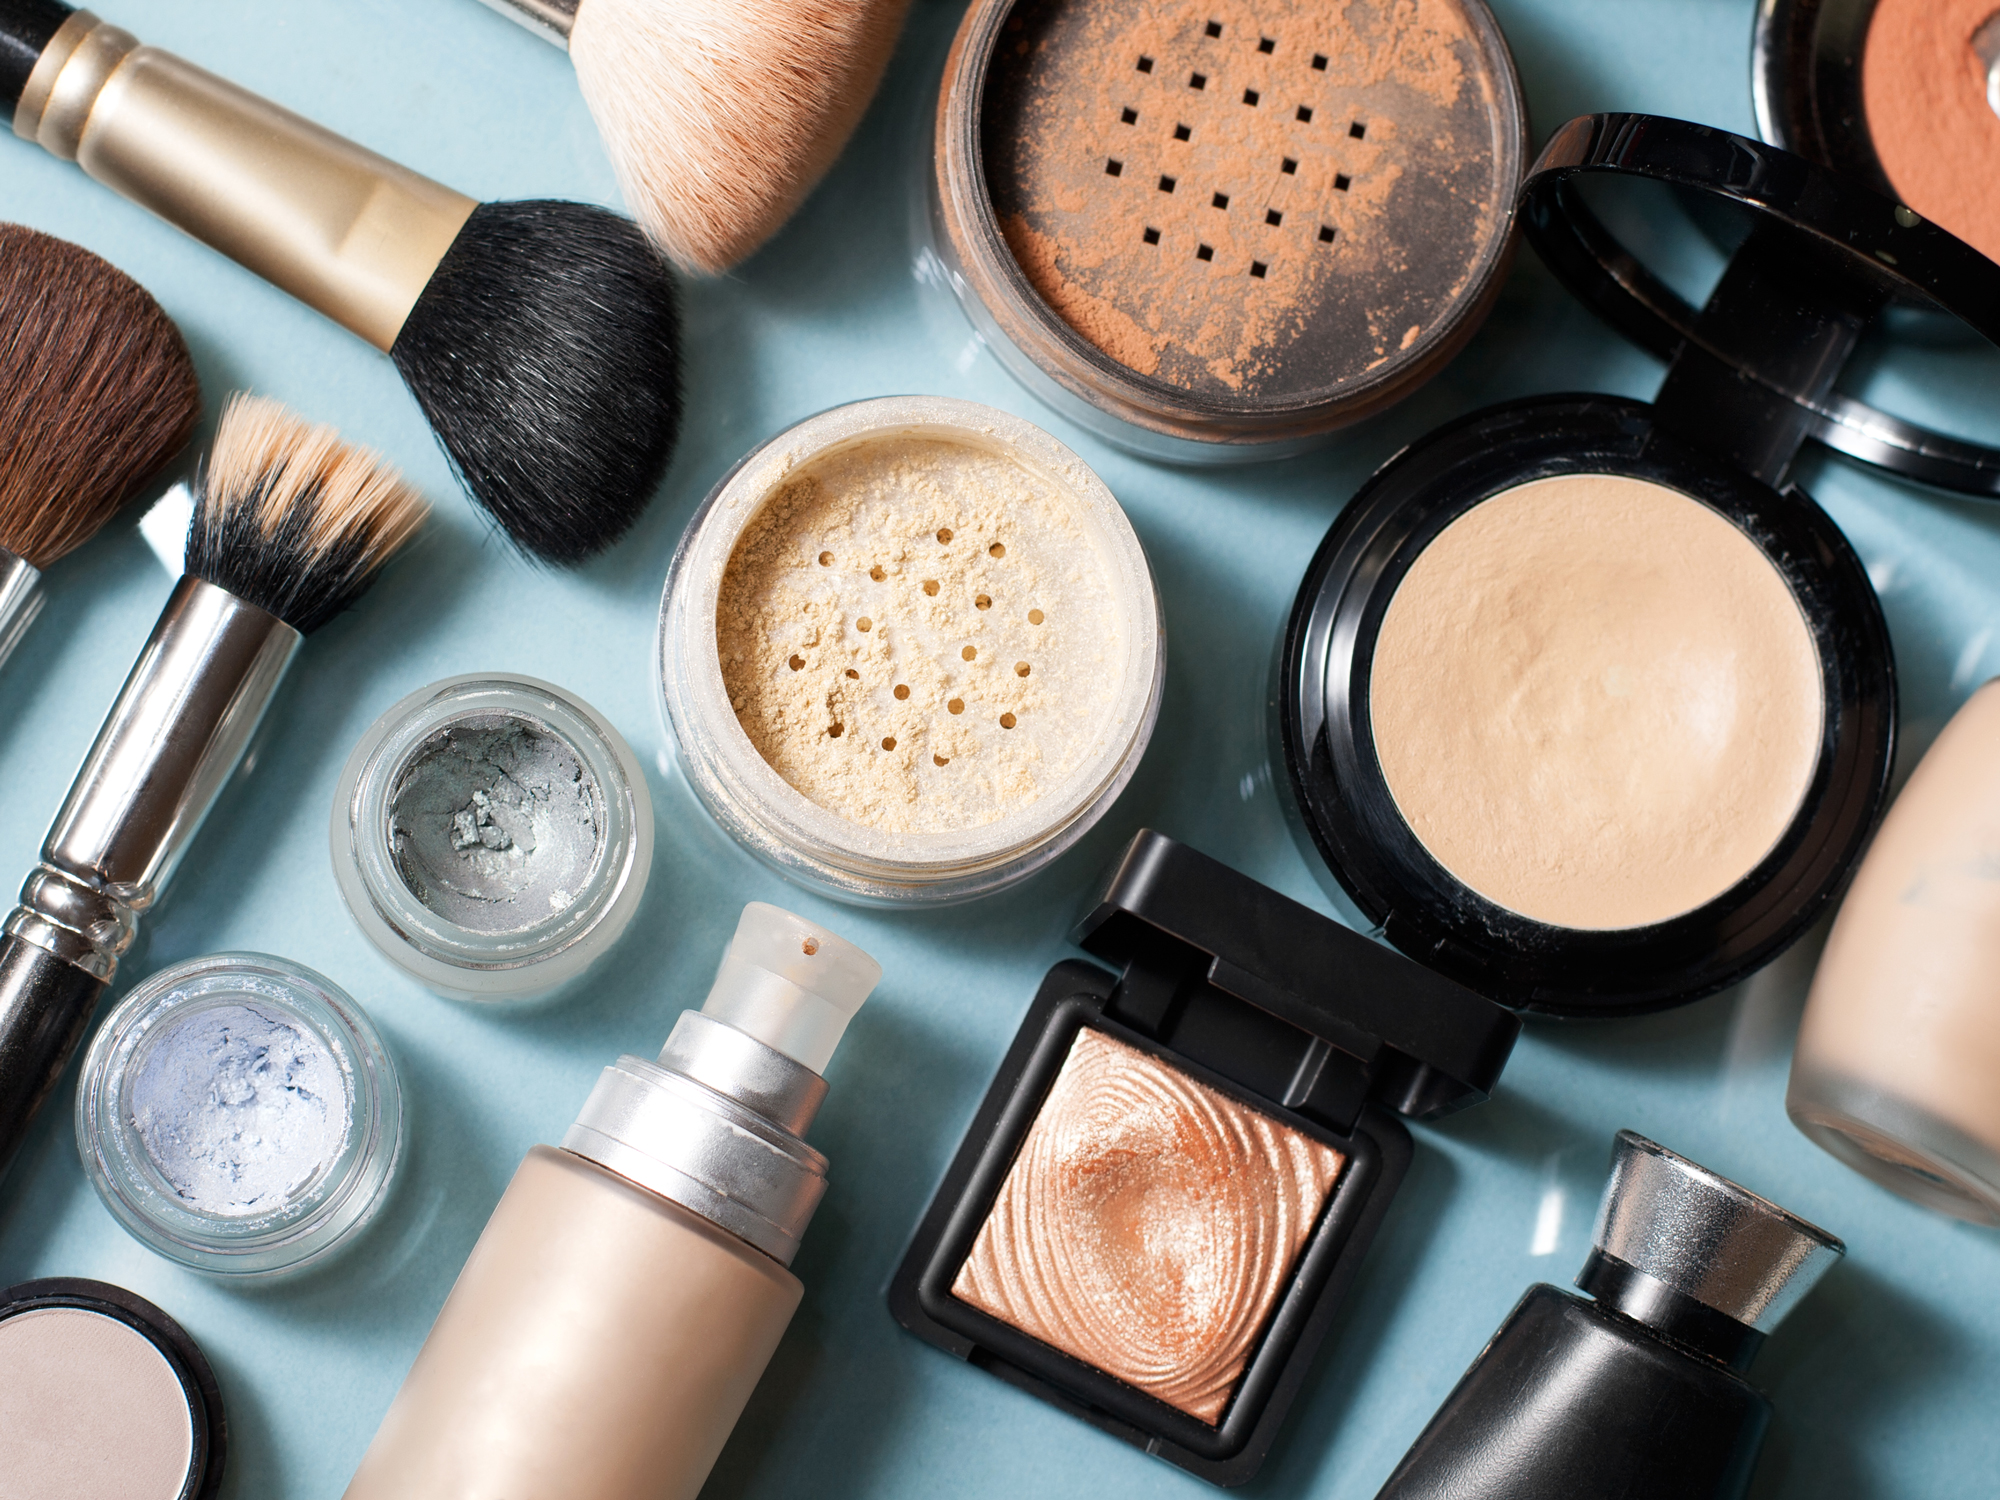 Should You Buy Paraben-Free Beauty Products? We Investigated So You Don't Have To